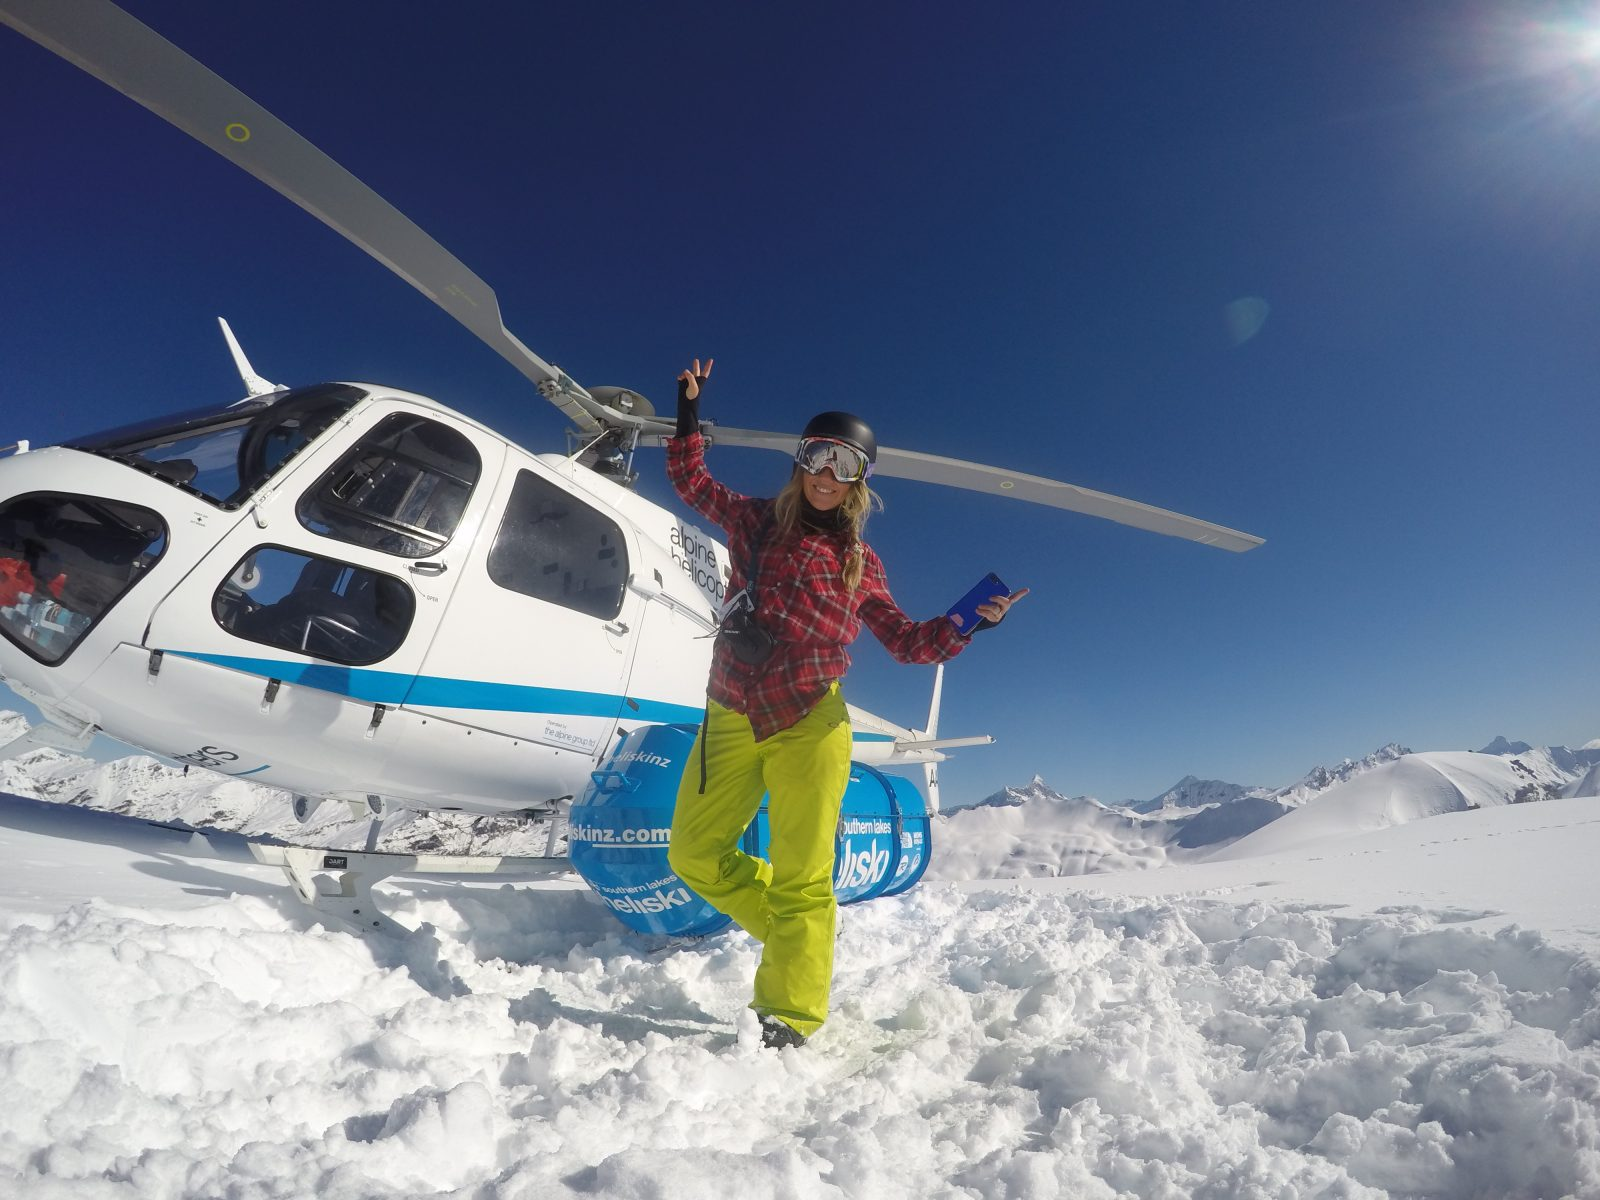 She breathes life!  Stephanie Prem  is back heli-boarding after her injury in 2010!